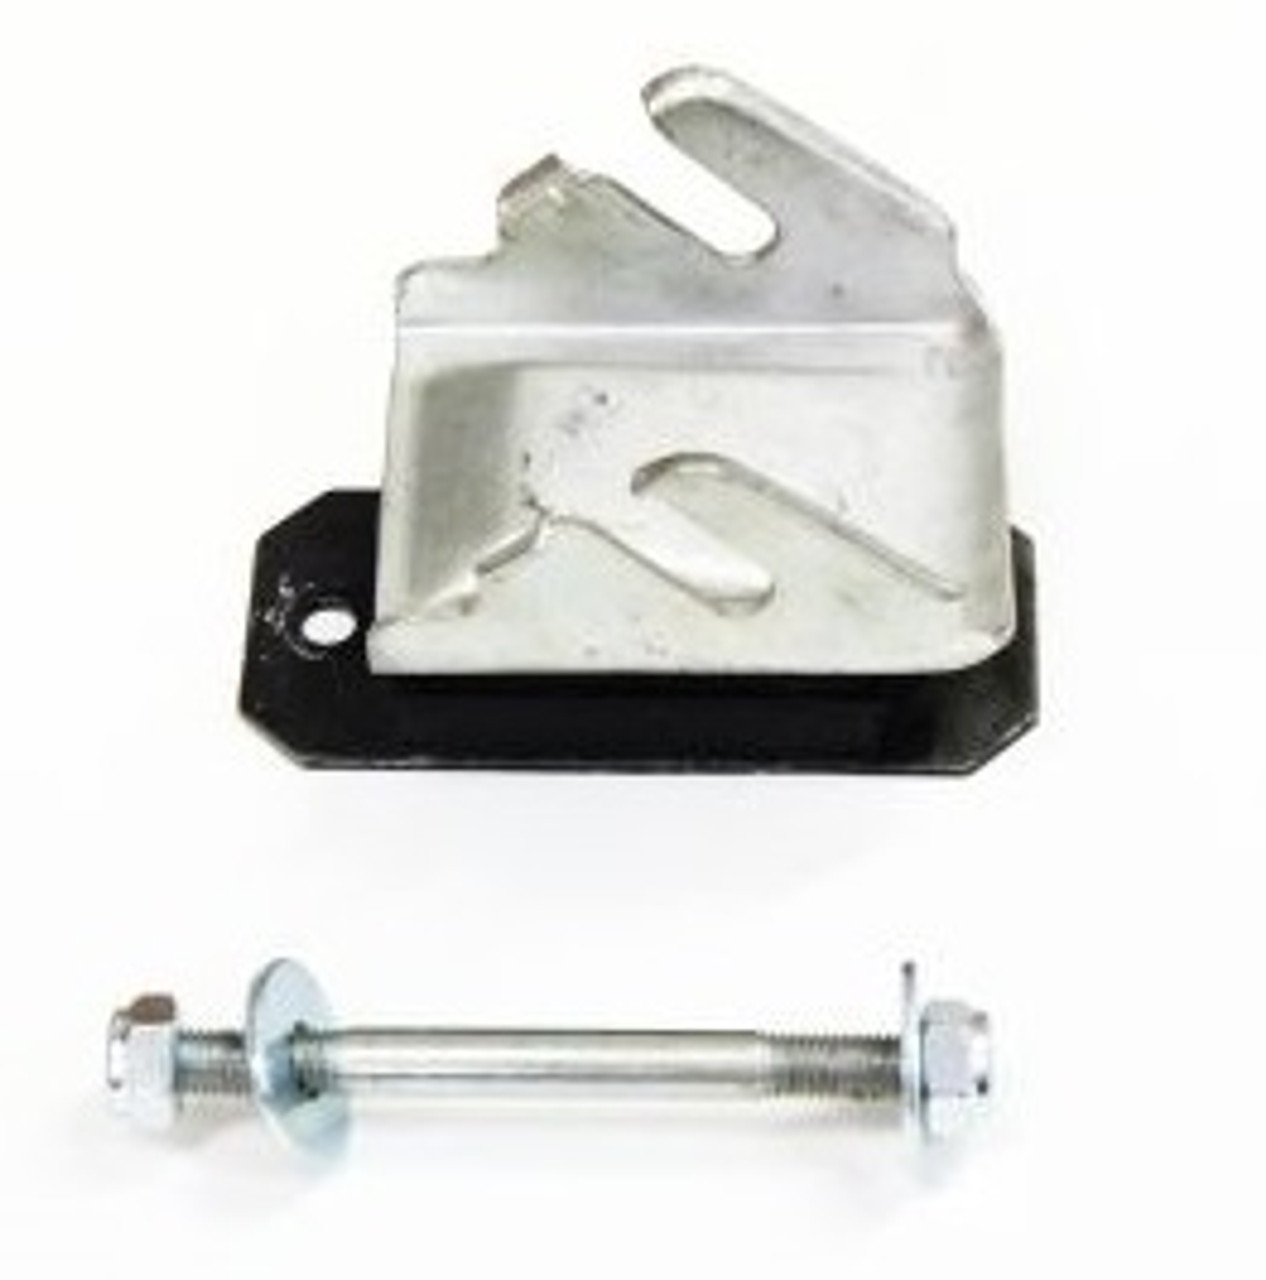 1. ENGINE MOUNT KIT